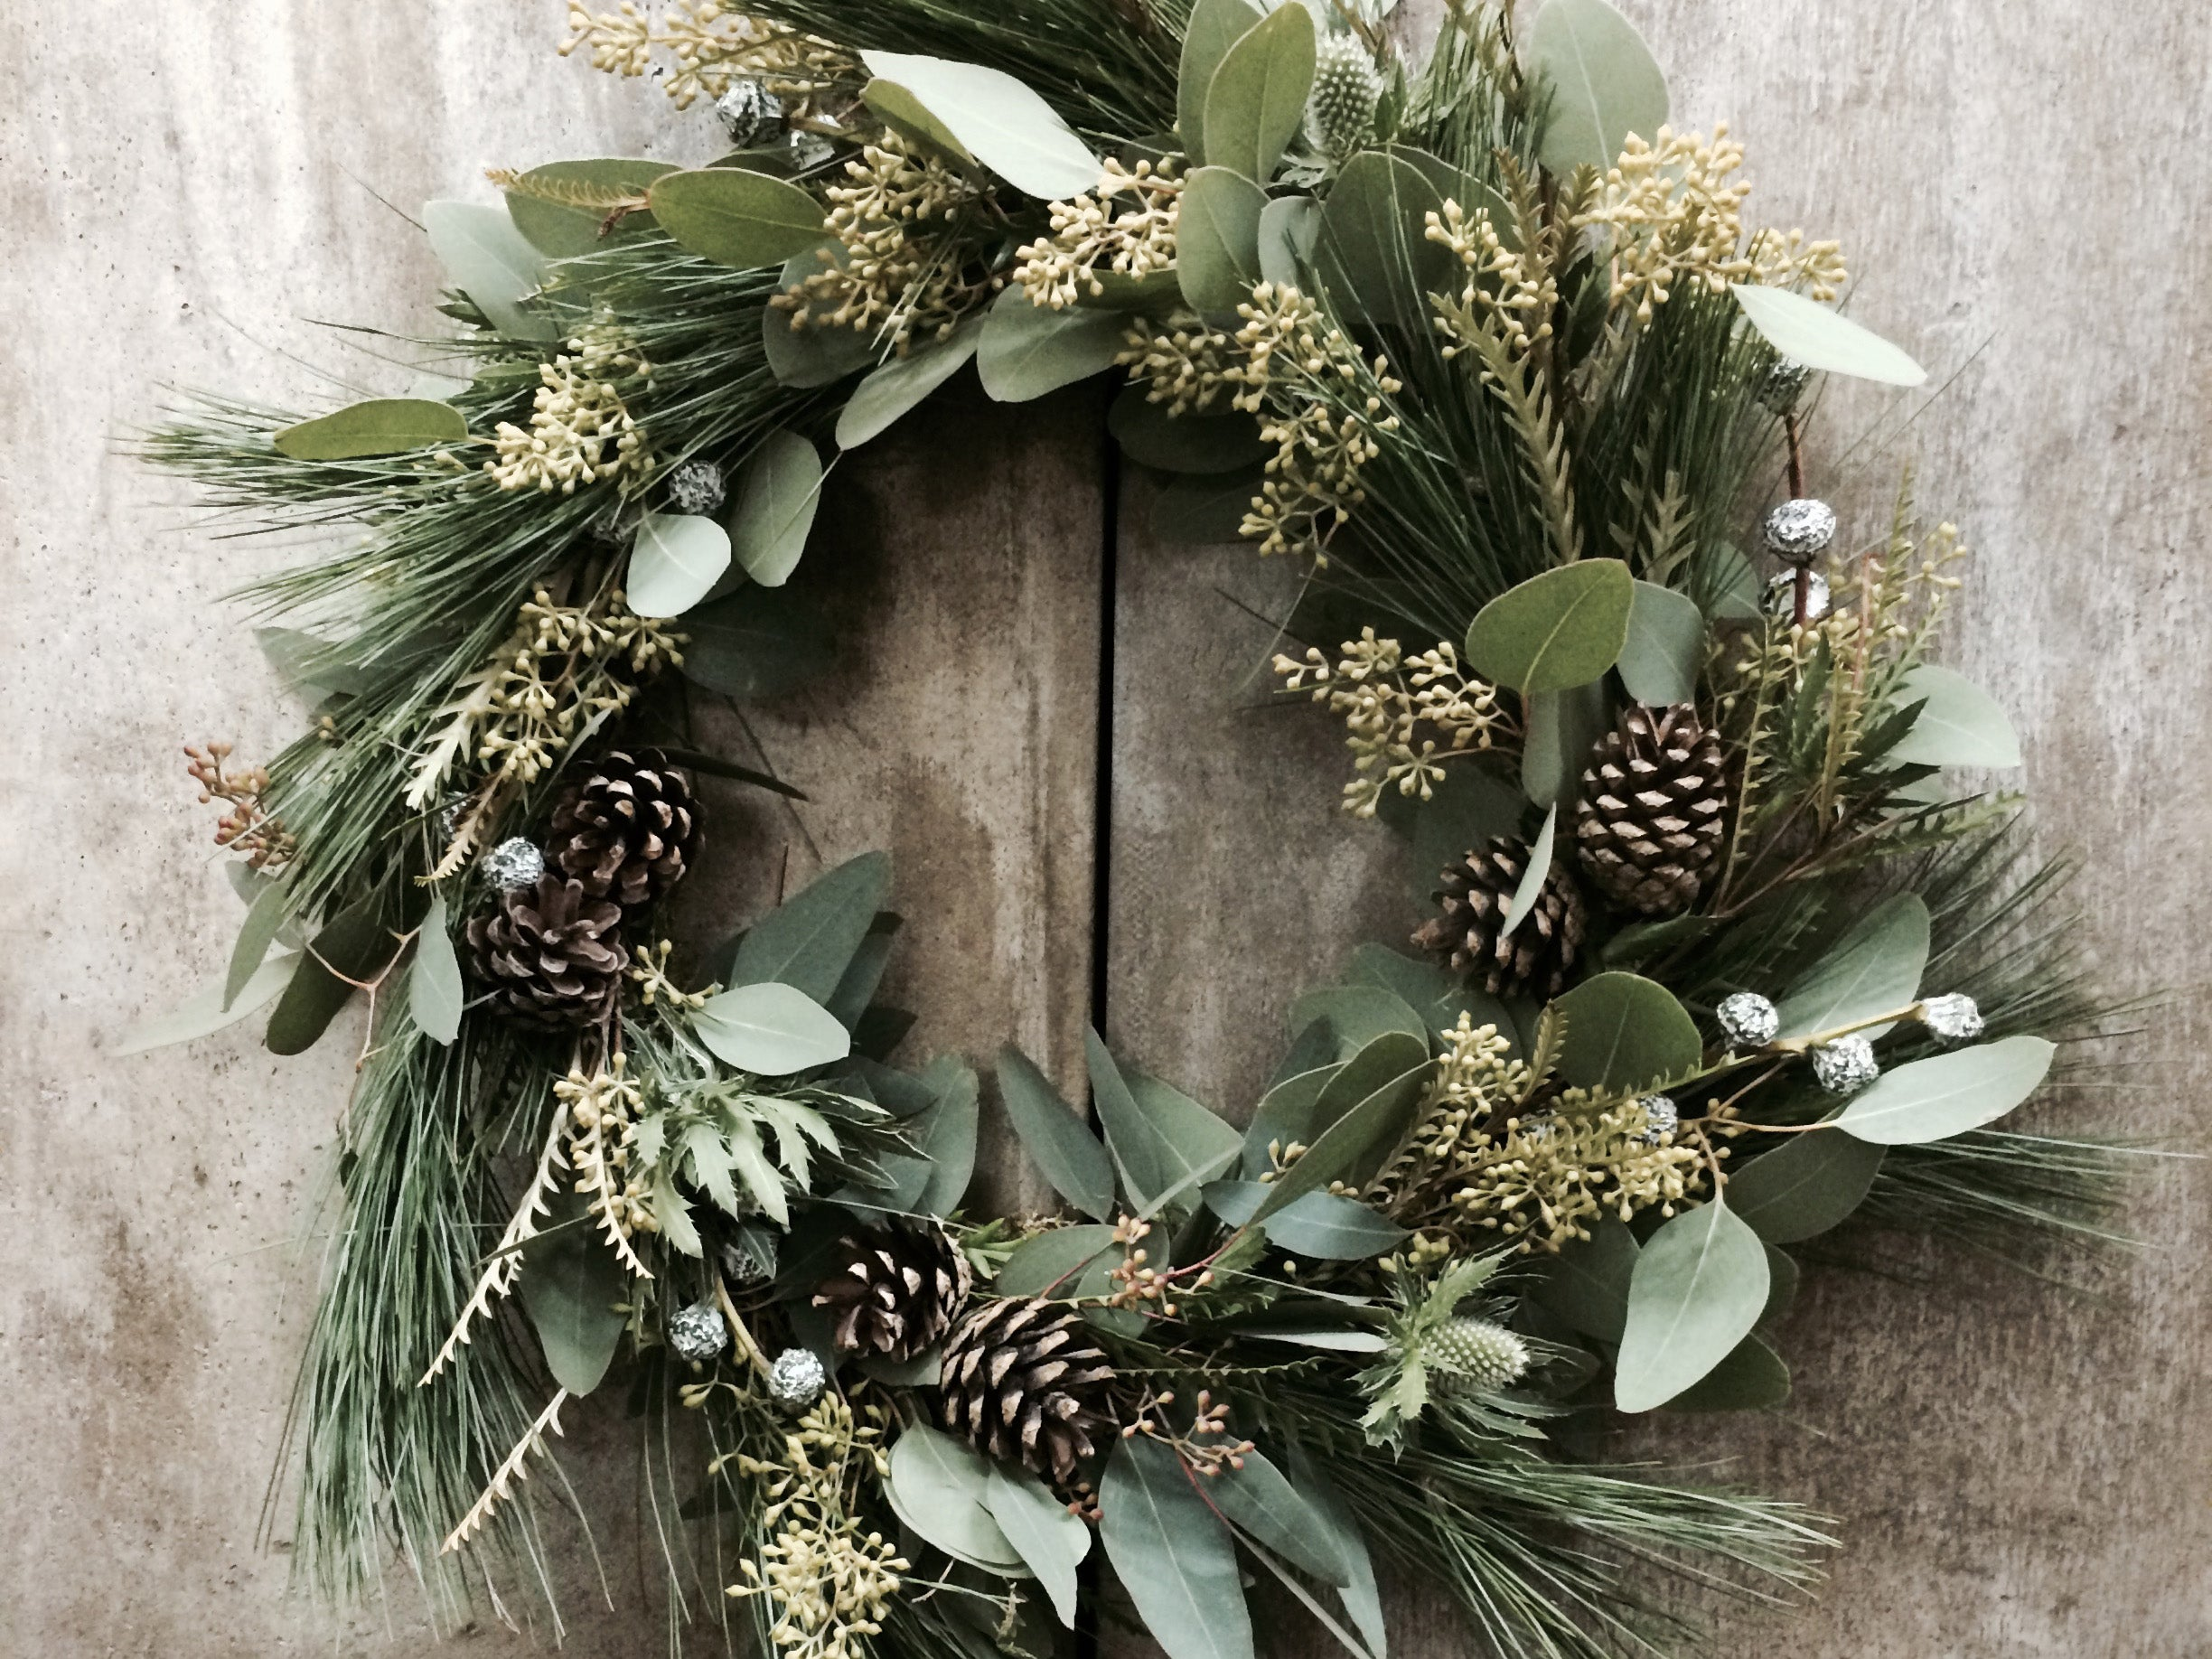 Christmas 2014: 11 best real wreaths | The Independent